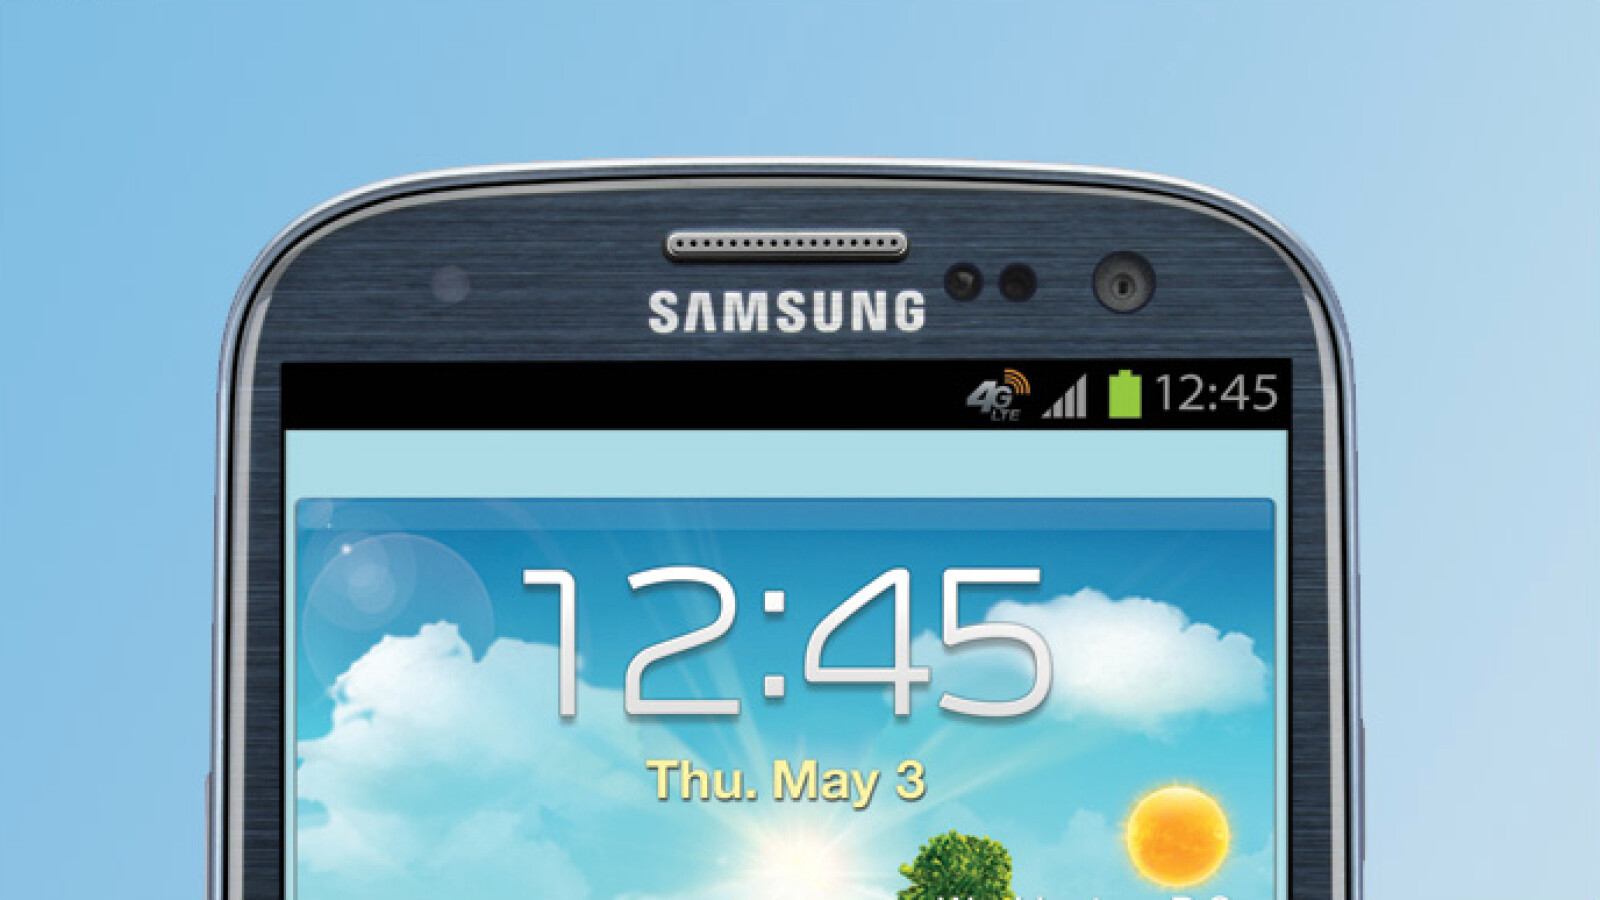 samsungs galaxy 3 im test viel ausstattung f r unter 200. Black Bedroom Furniture Sets. Home Design Ideas